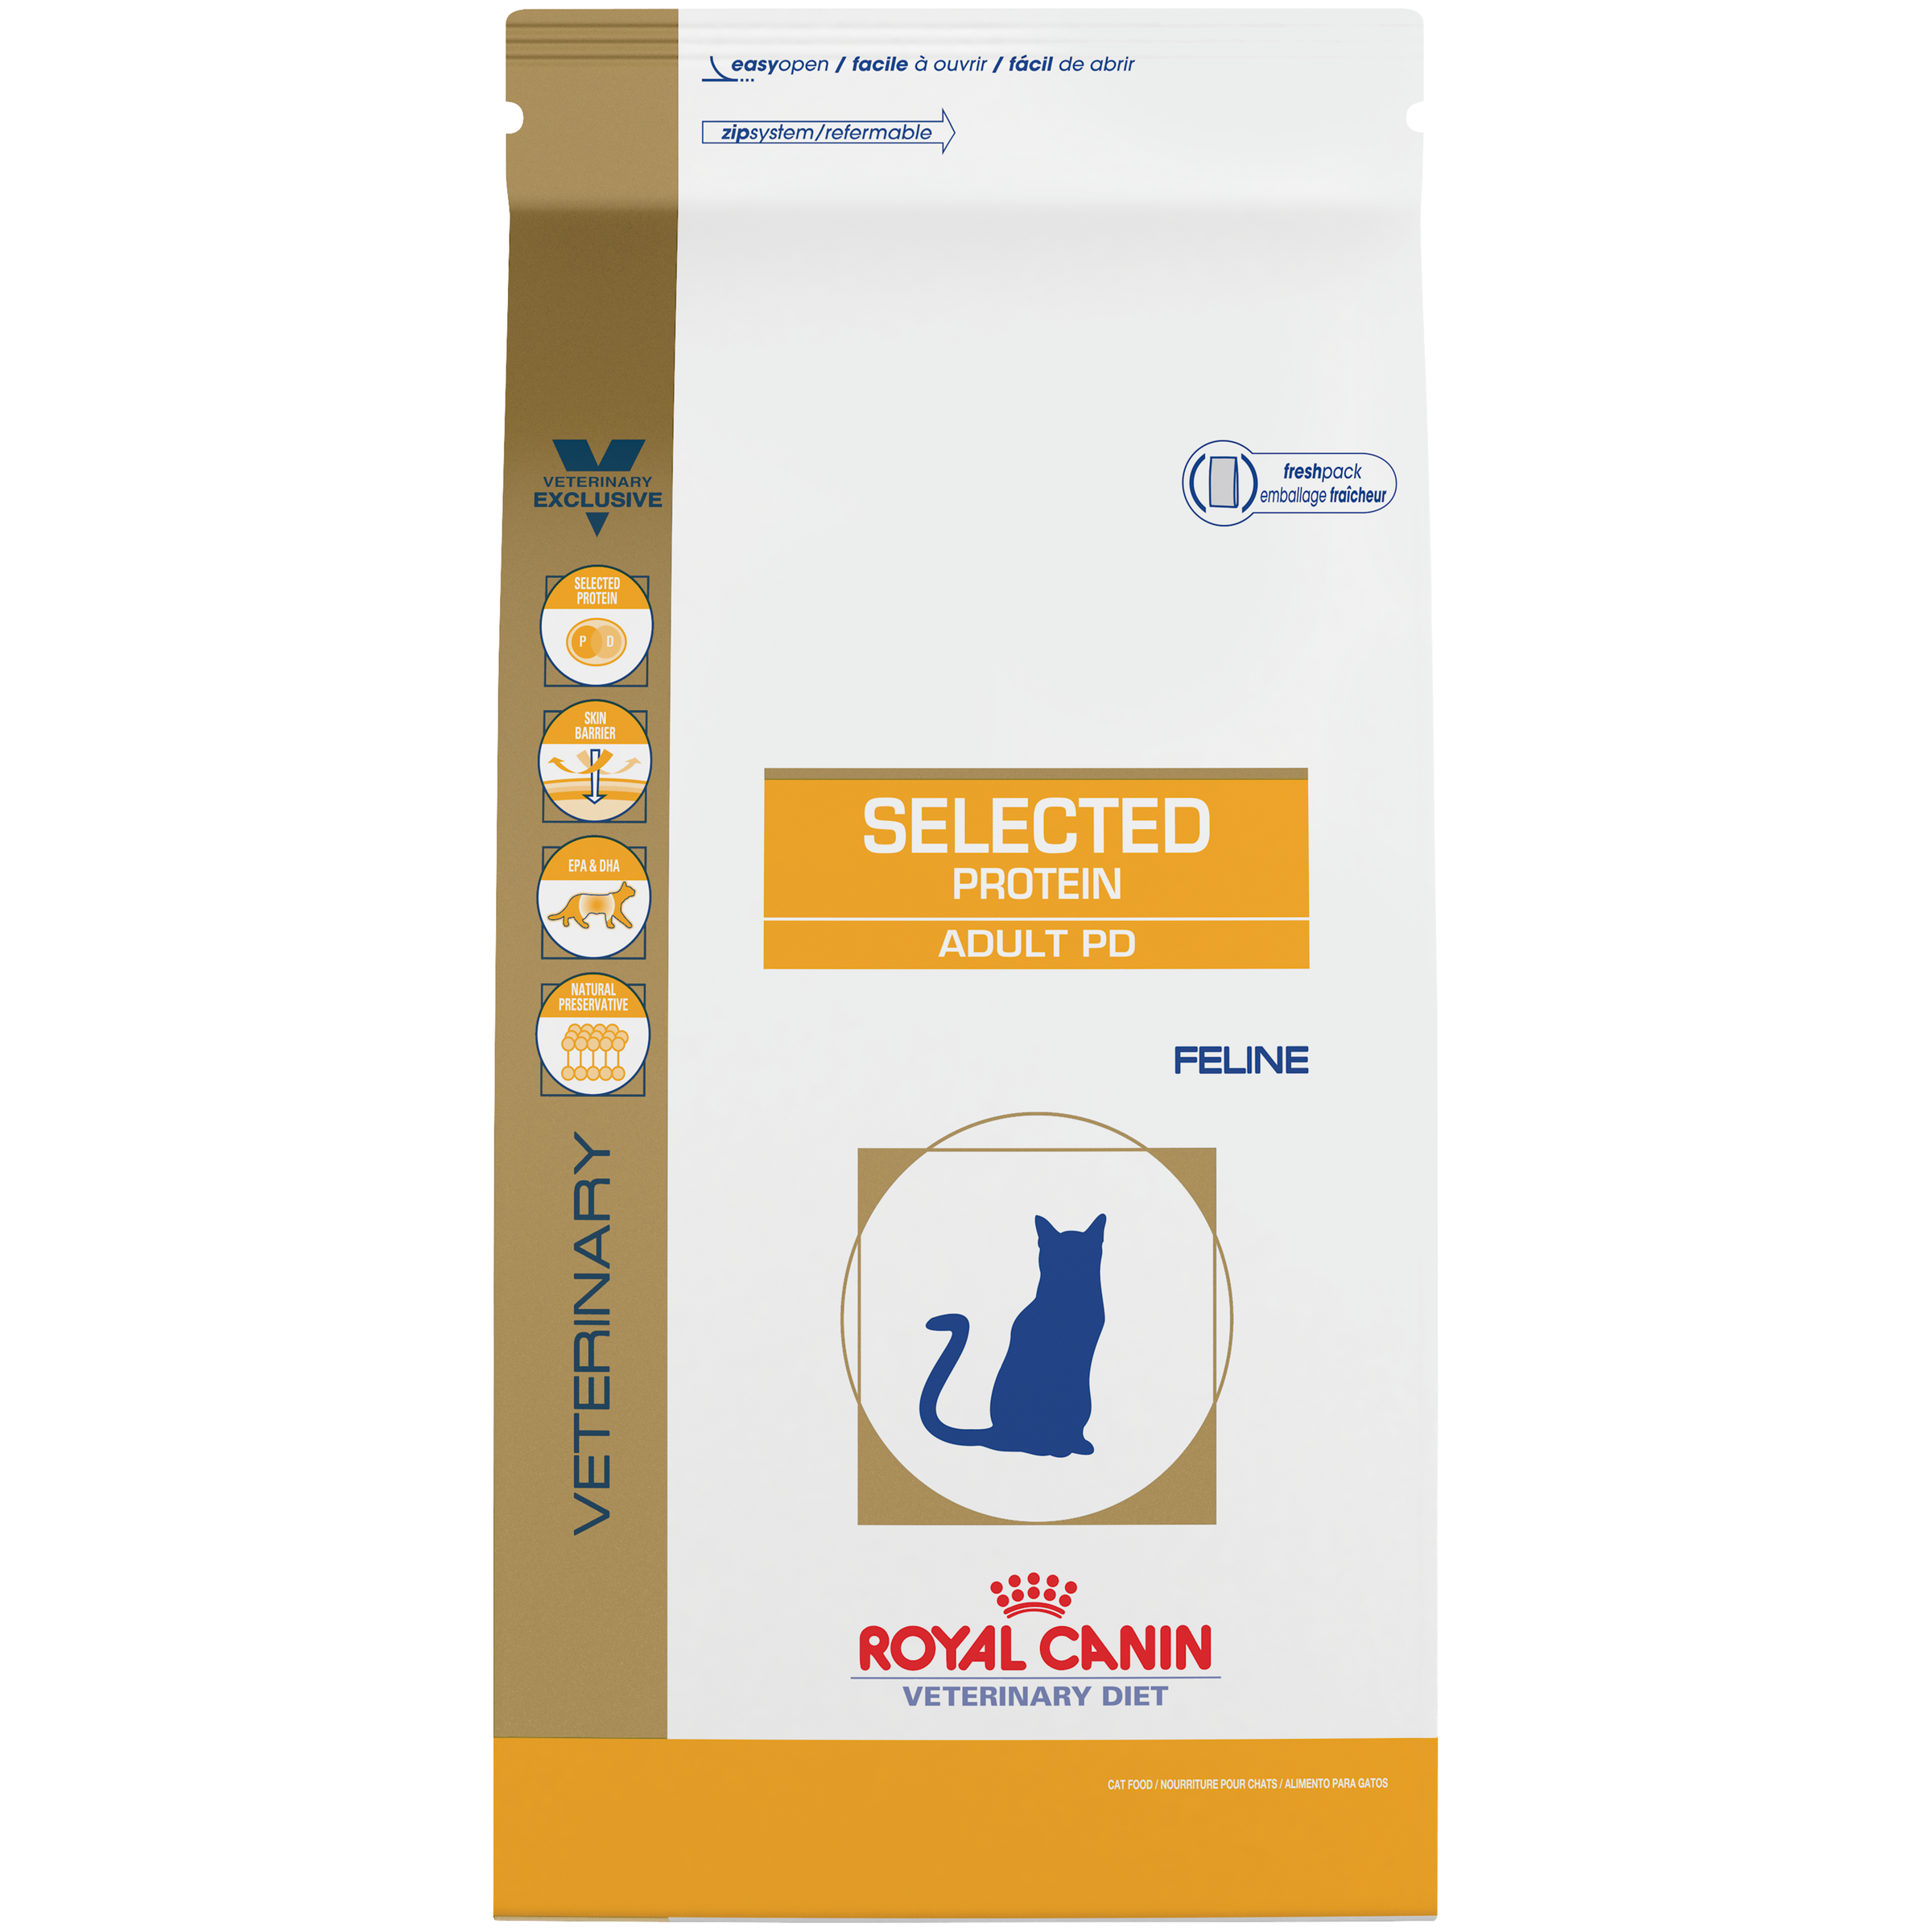 Royal Canin Veterinary Diet Feline Selected Protein Adult PD Dry Cat Food